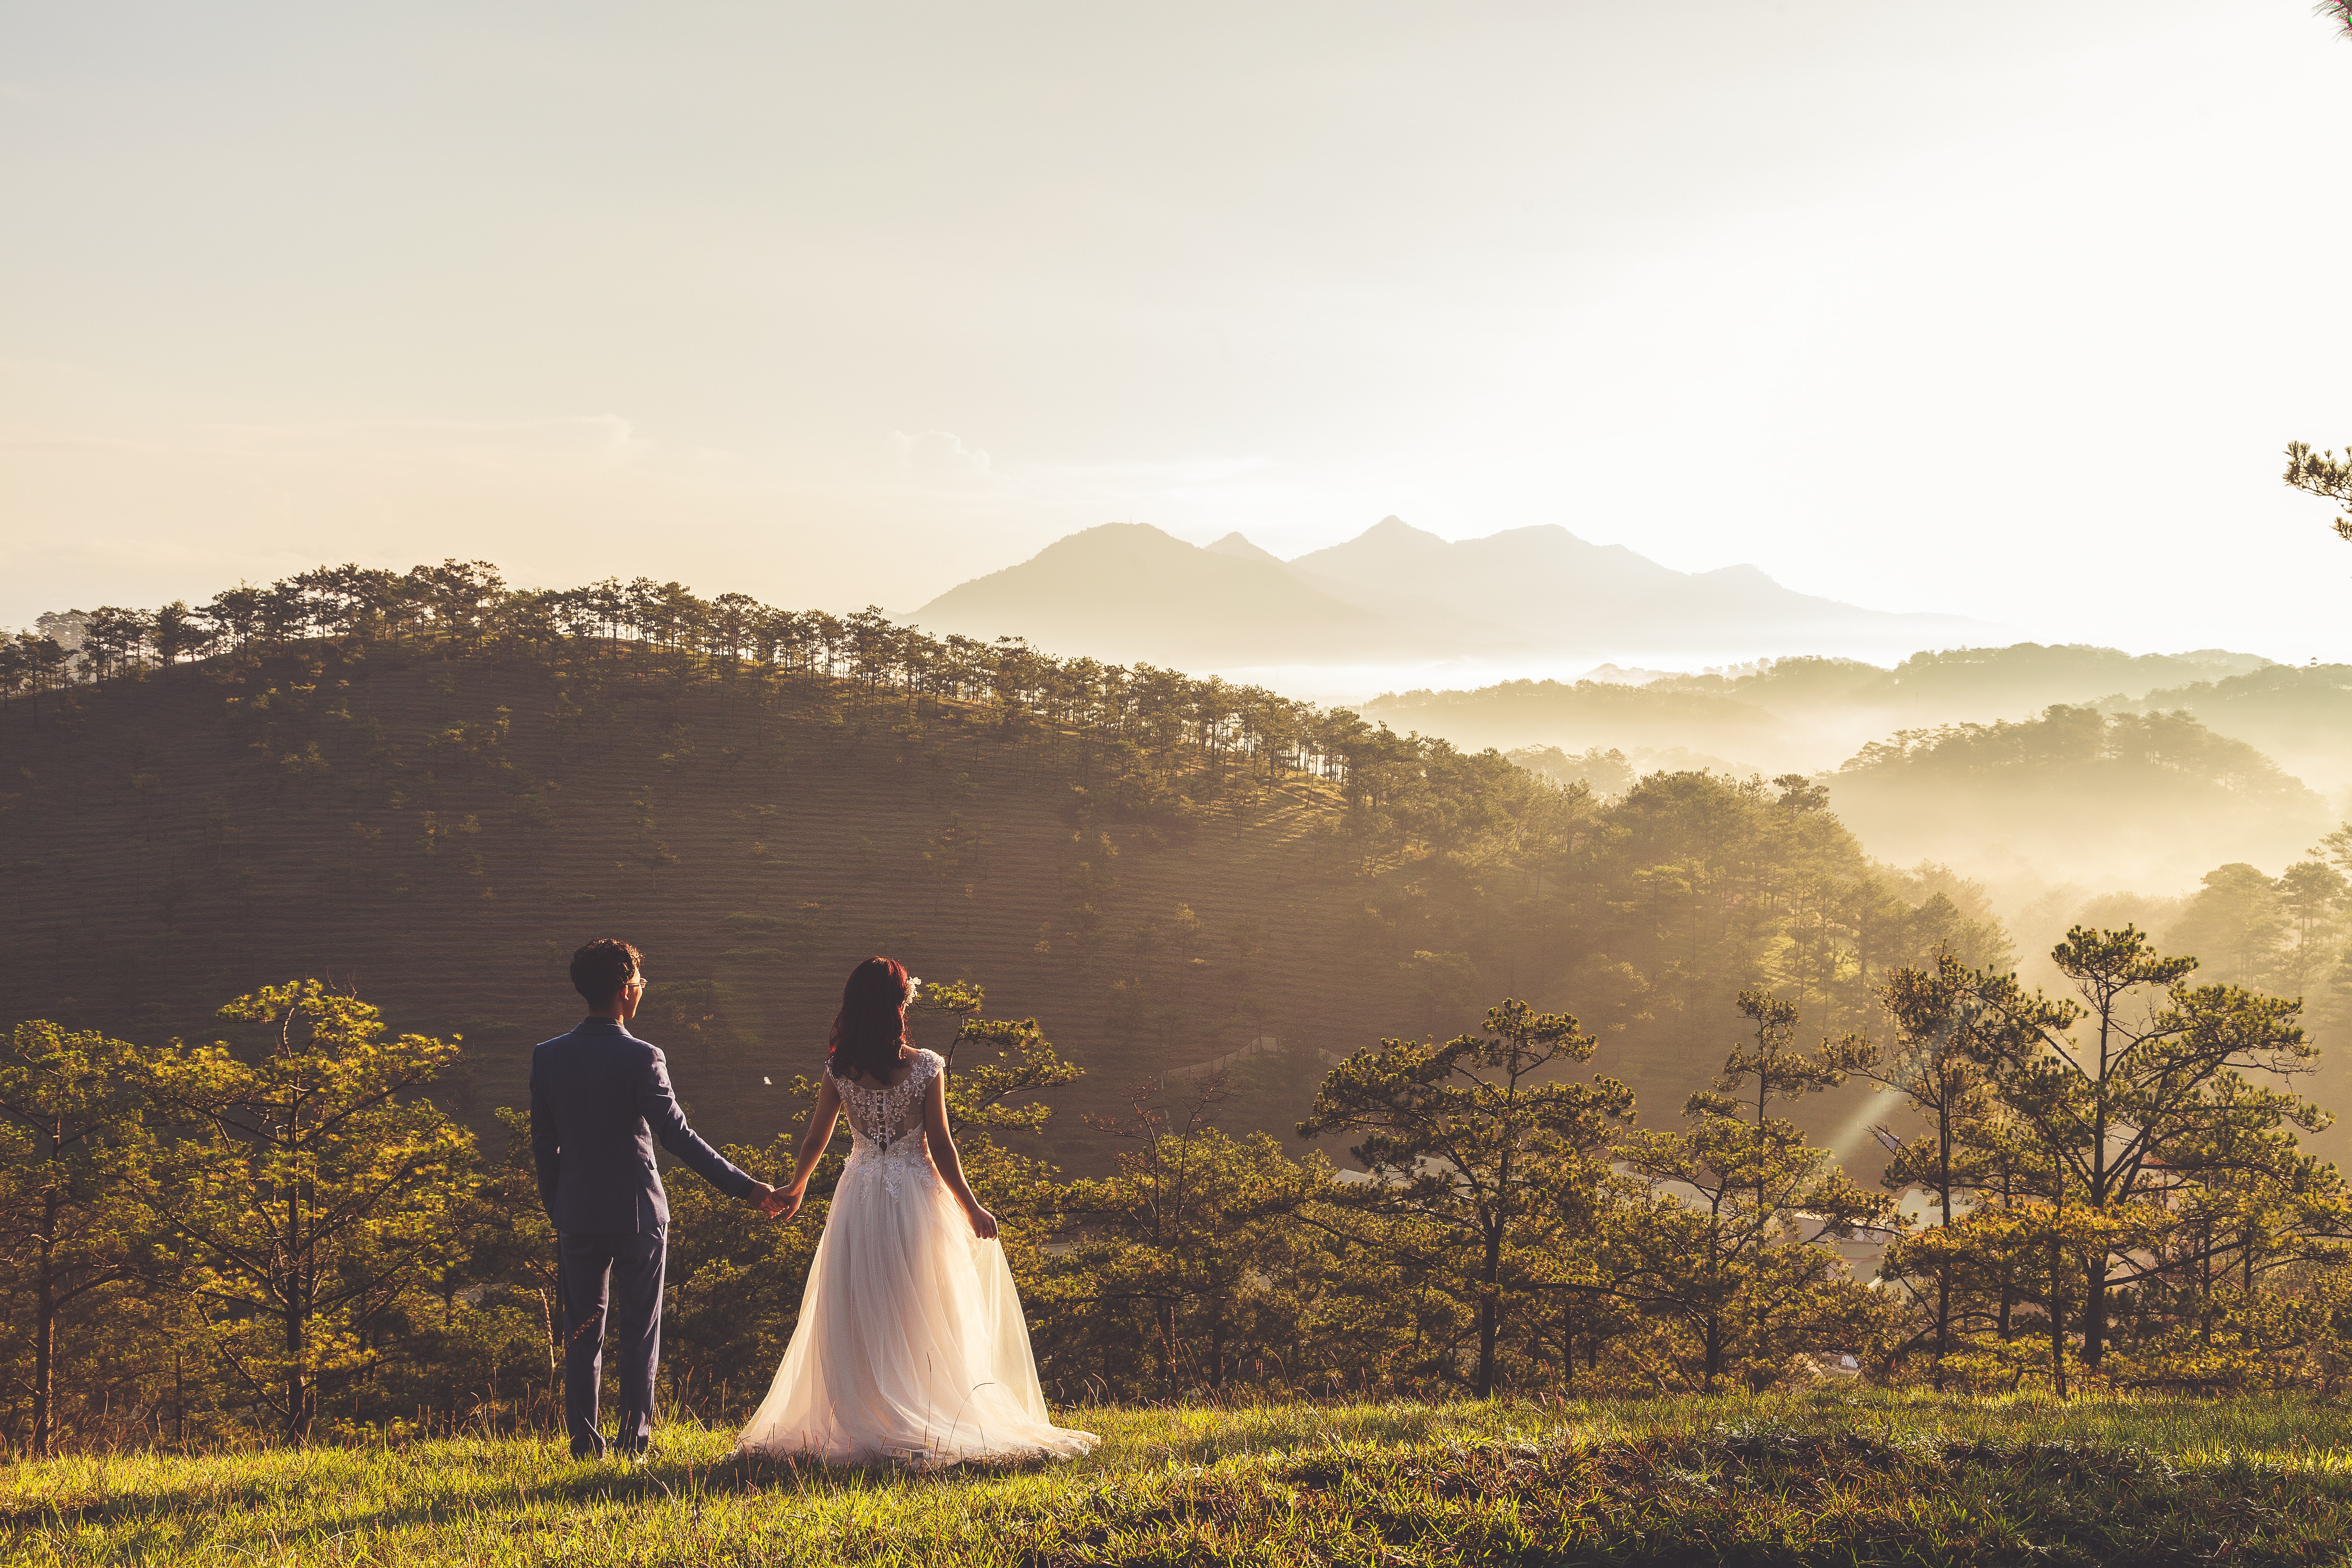 A married couple holds hands looking into the distance in a grassy wooded area in the Dalat hills